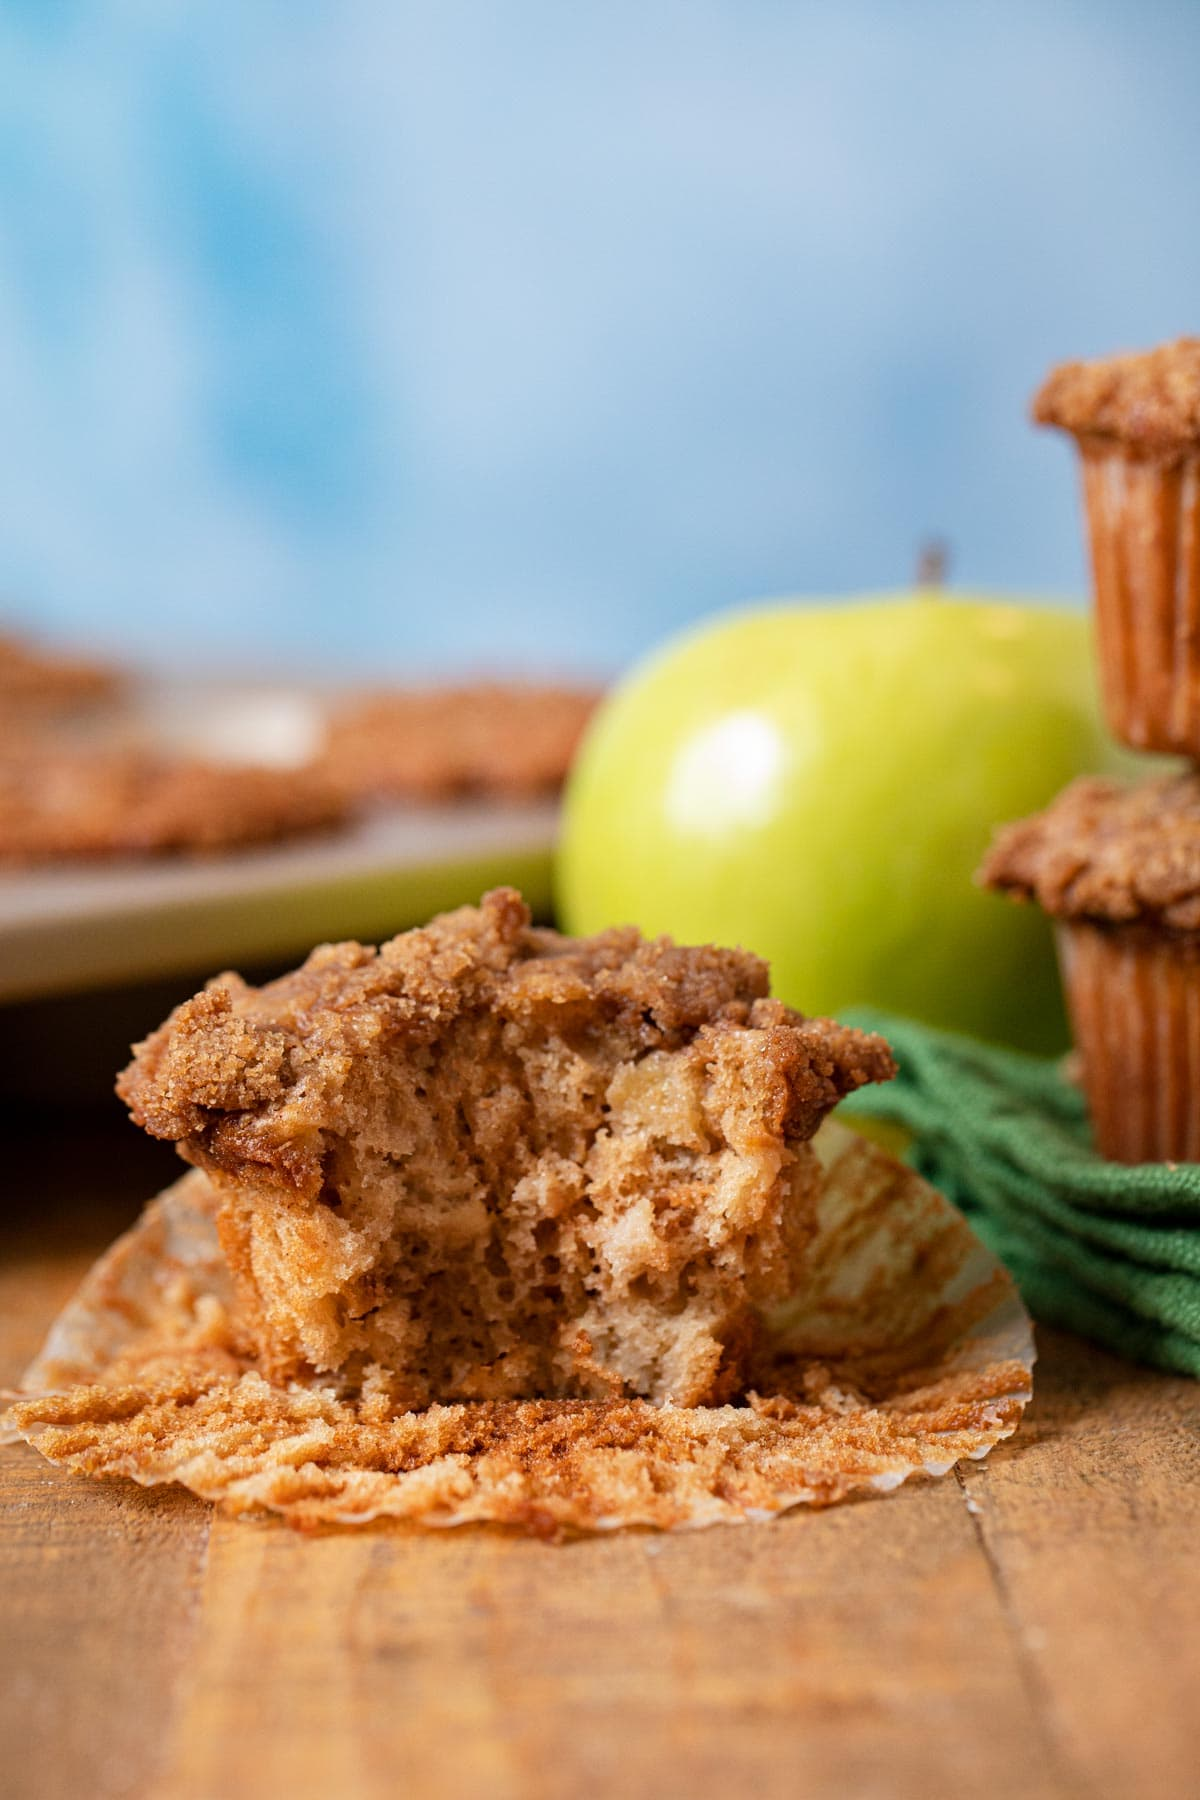 Apple Pie Muffin with bite removed